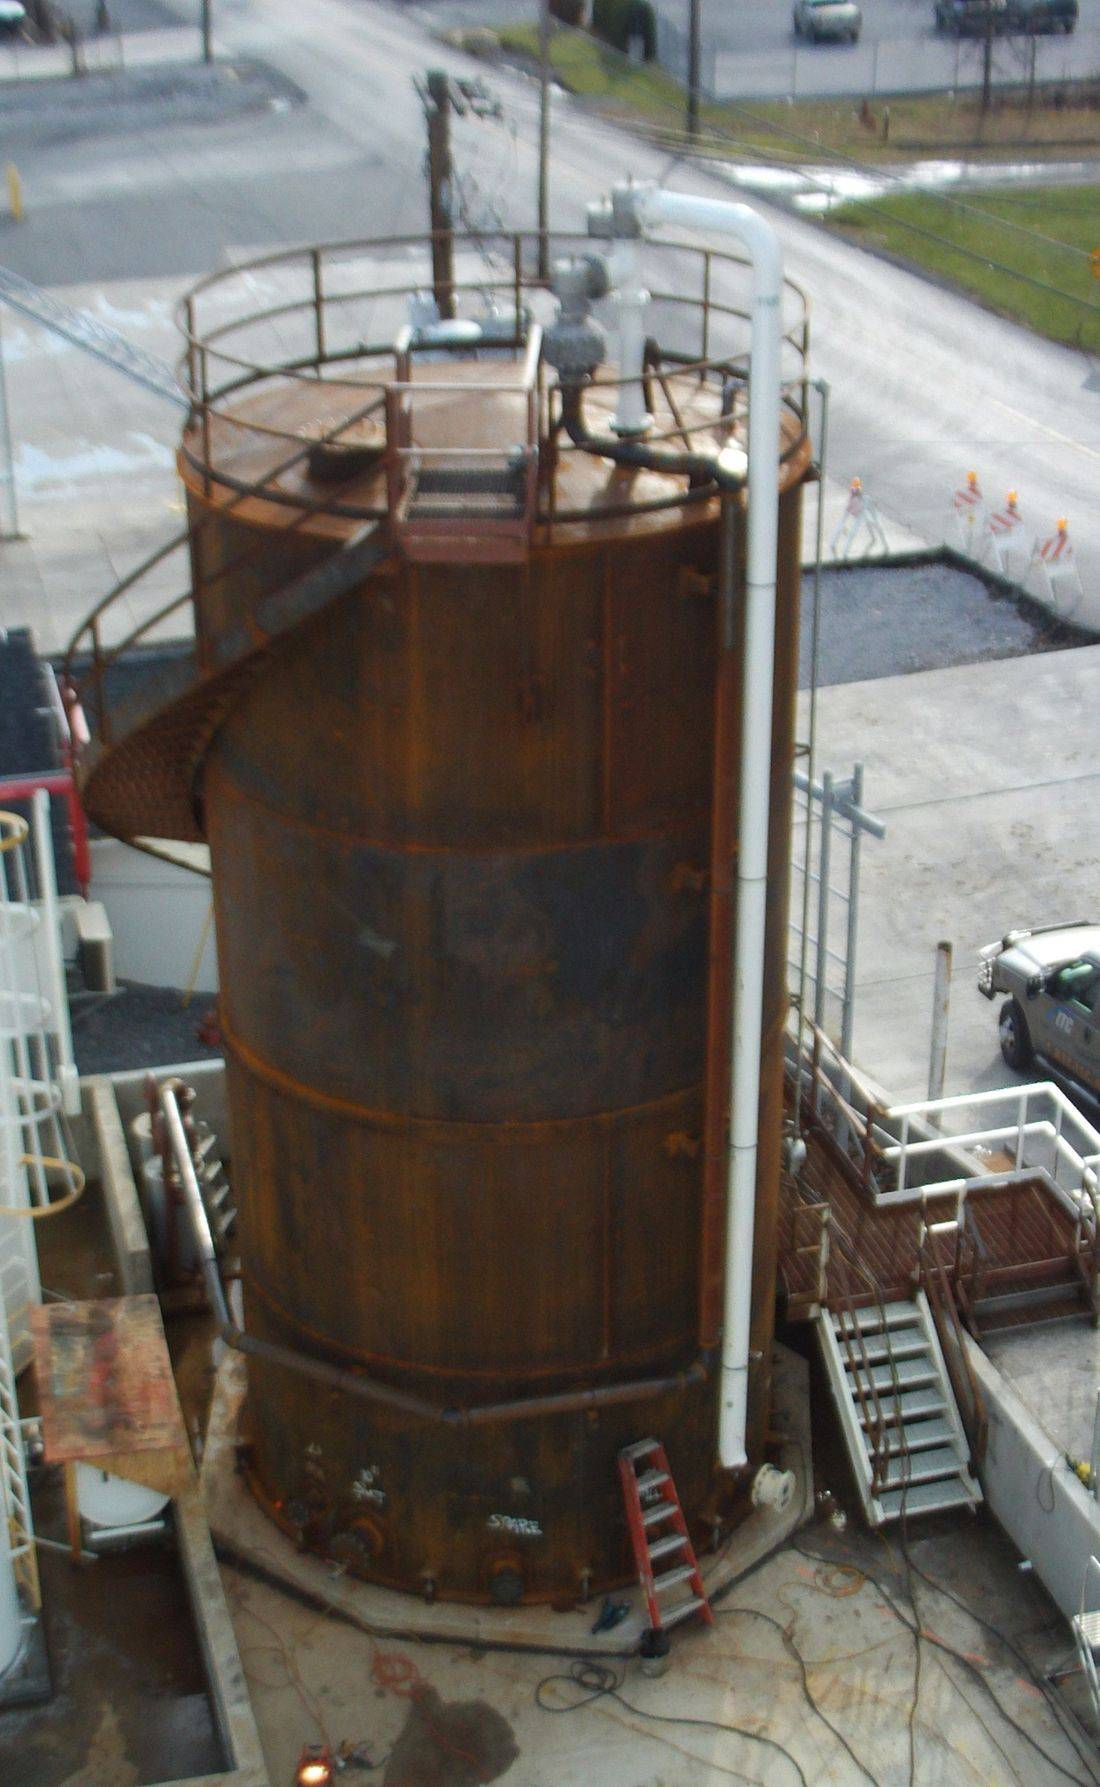 RT sets a storage tank ring during new welded steel storage tank construction.